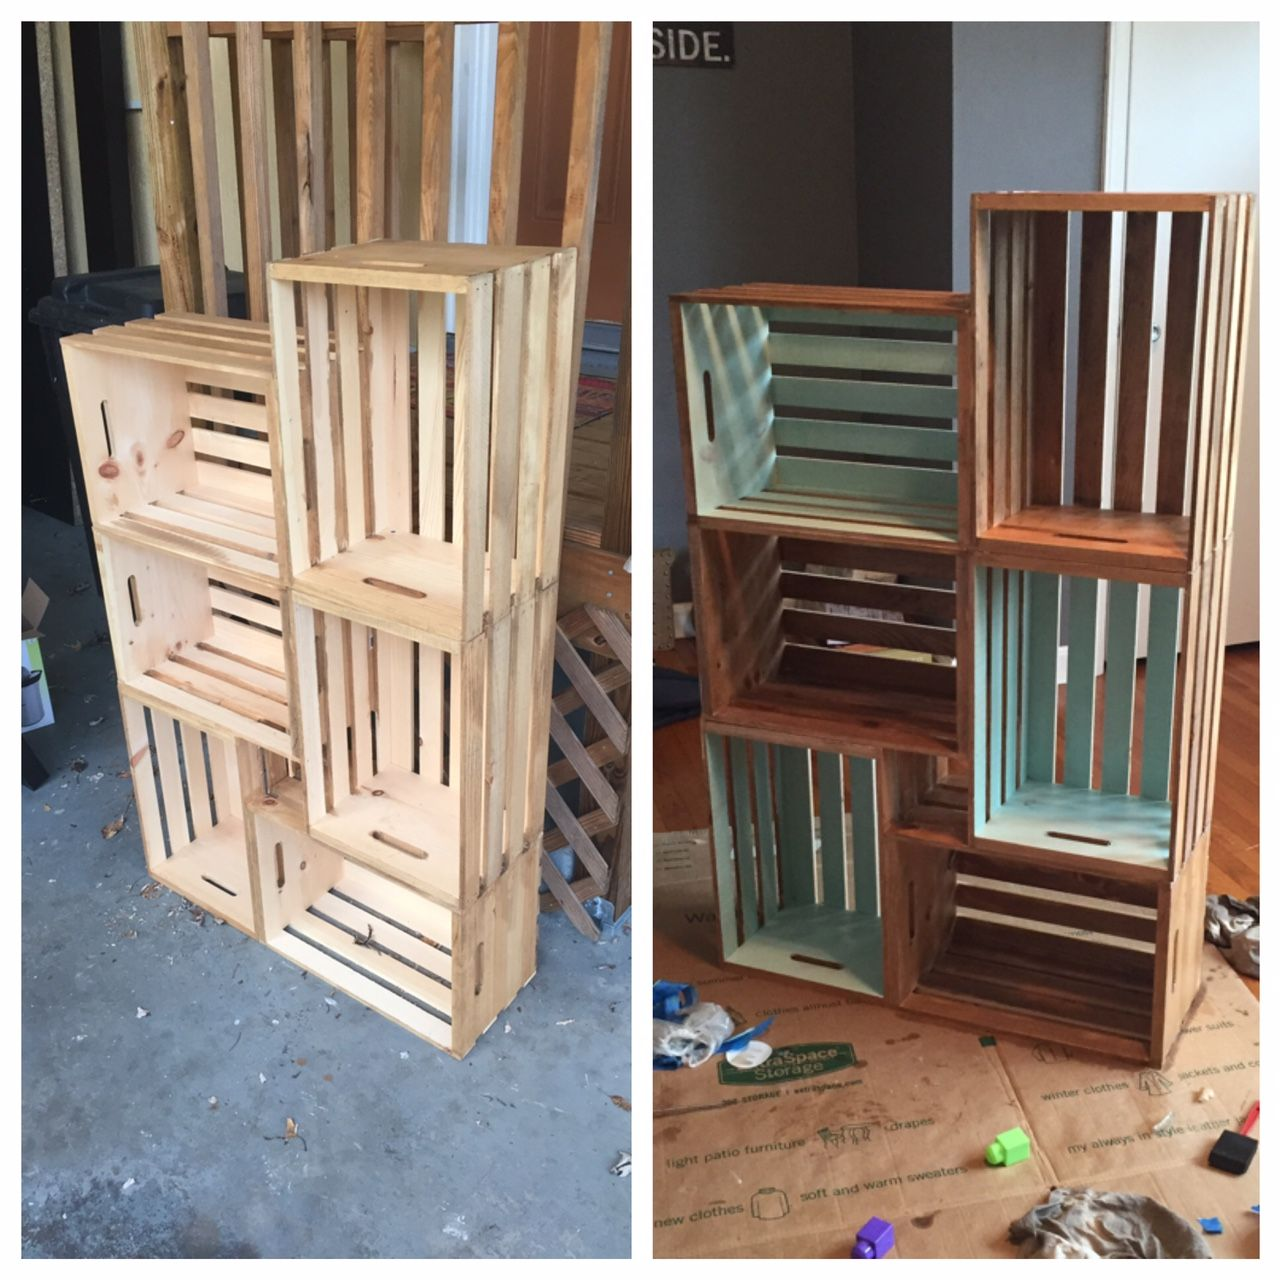 Muebles De Madera En Walmart 6 Wooden Crates From Walmart Stain And Chalk Paint Diy Cajas